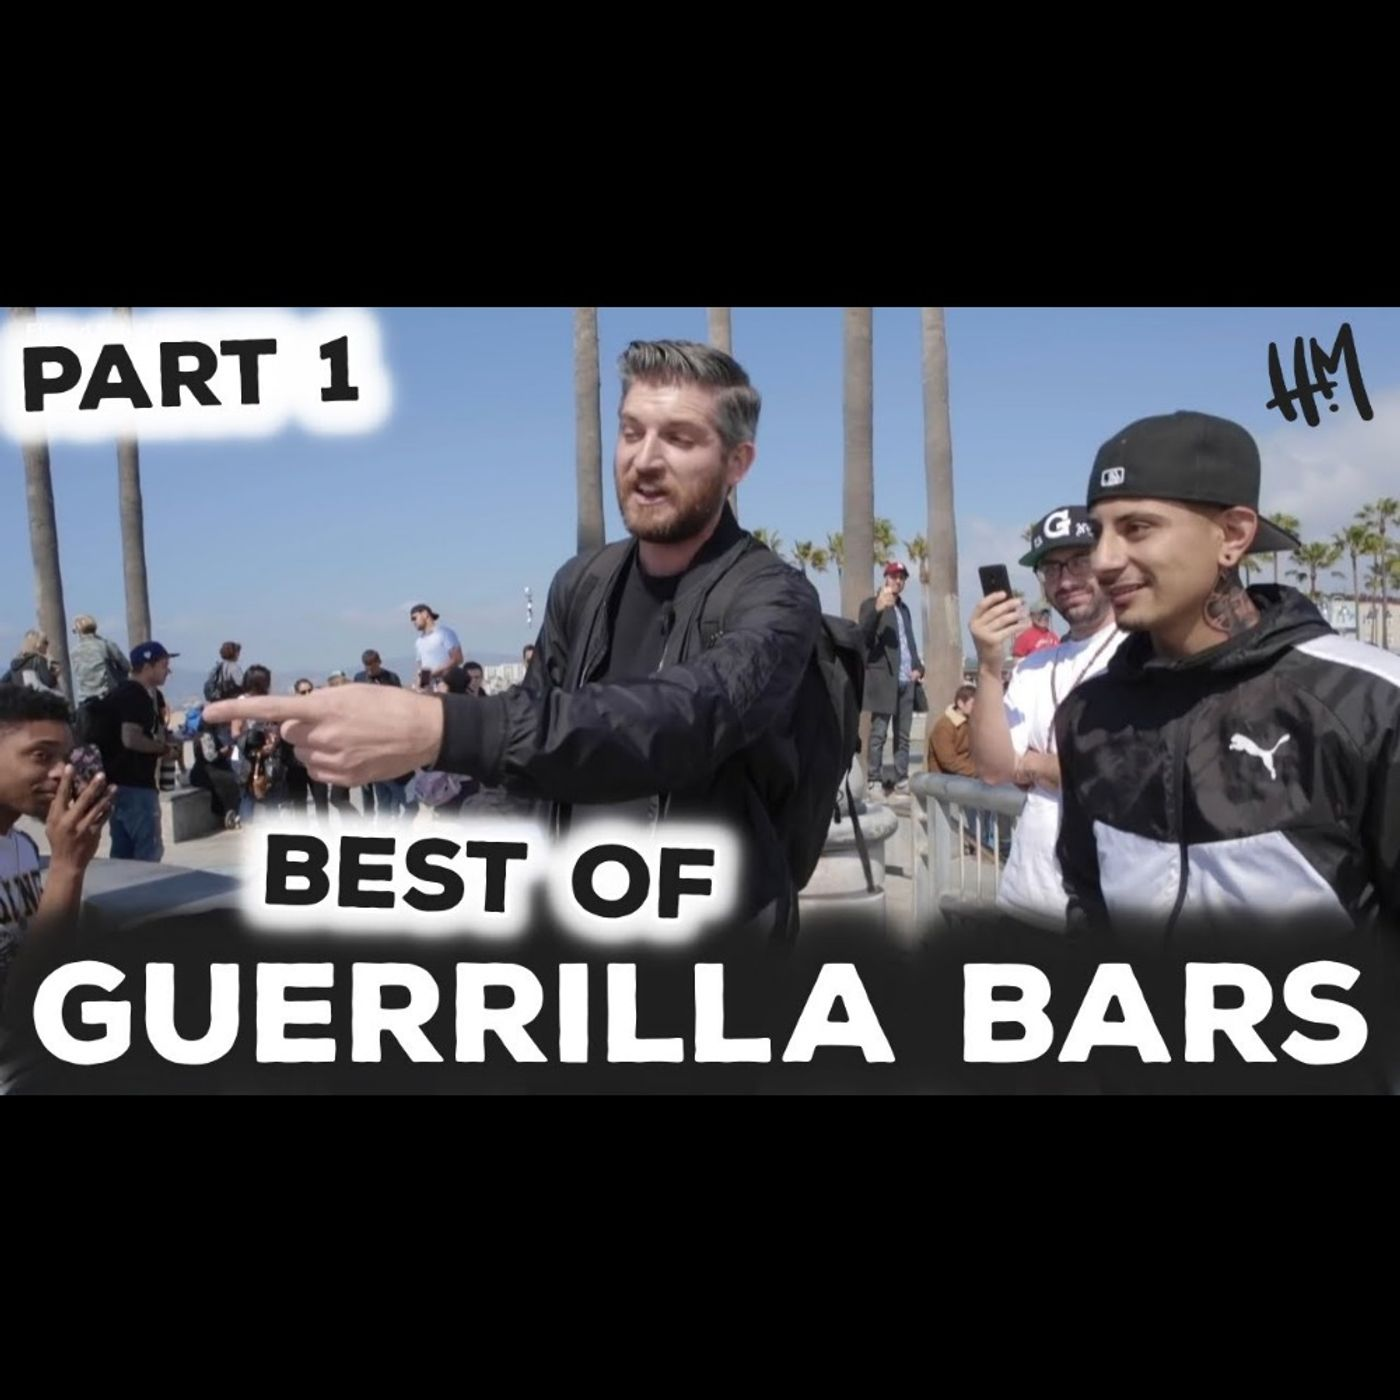 Harry Mack Freestyles Give People A Genuine Smile - Best Of Guerrilla Bars Part 1